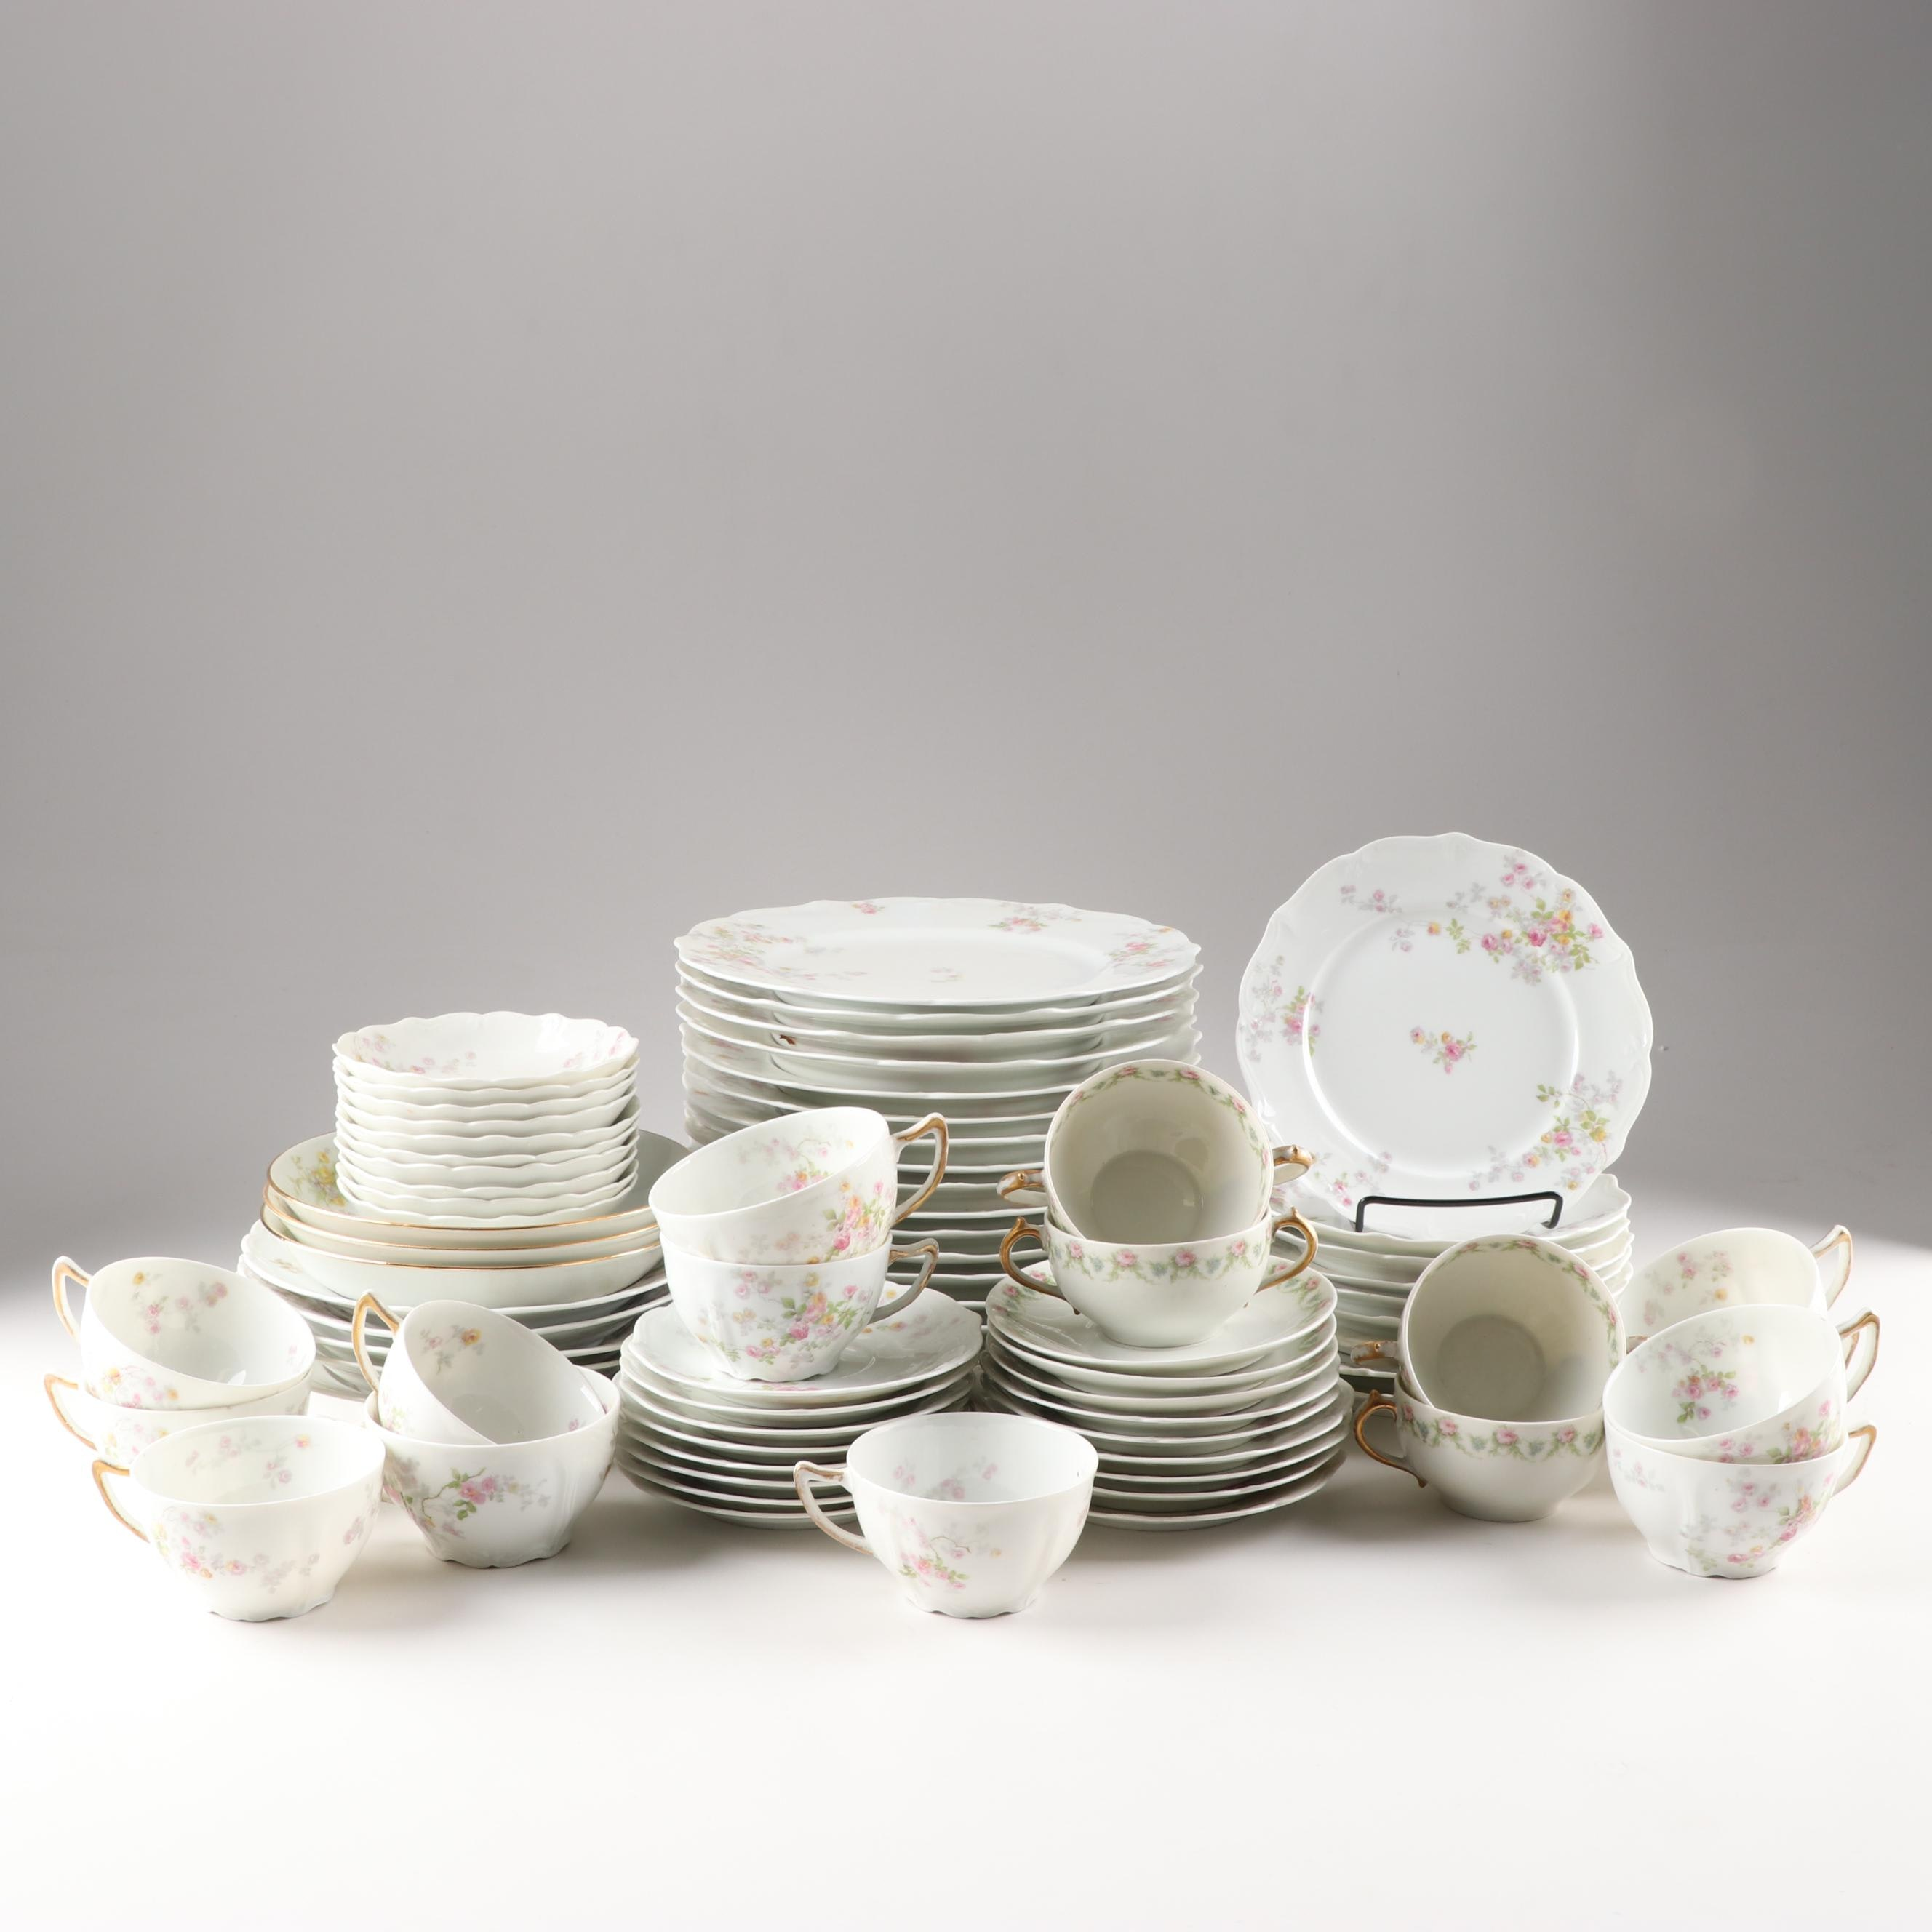 Assorted Haviland Porcelain Dinnerware